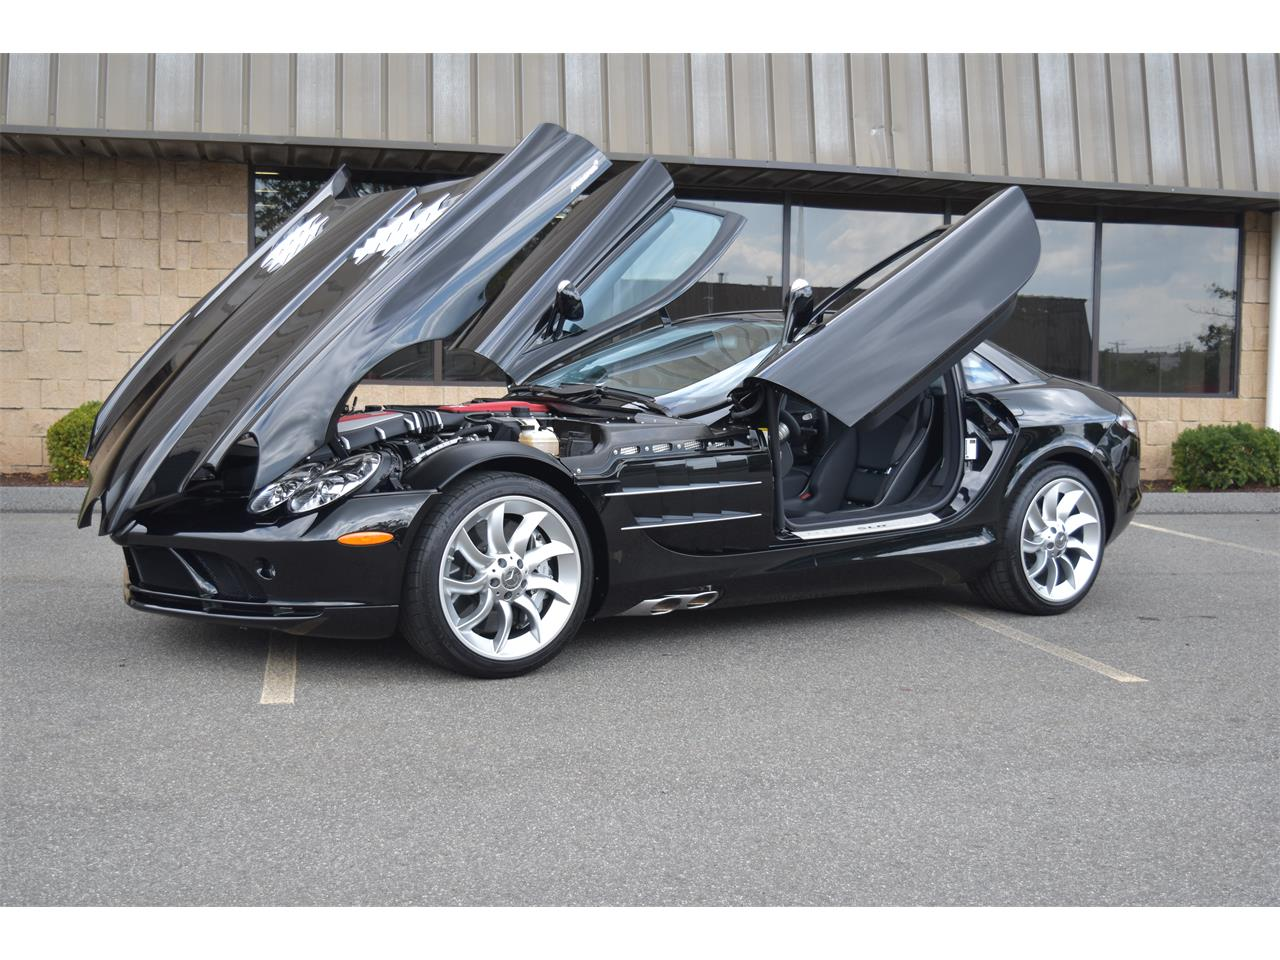 Large Picture of 2006 SLR McLaren Offered by GT Motor Cars - LS3K